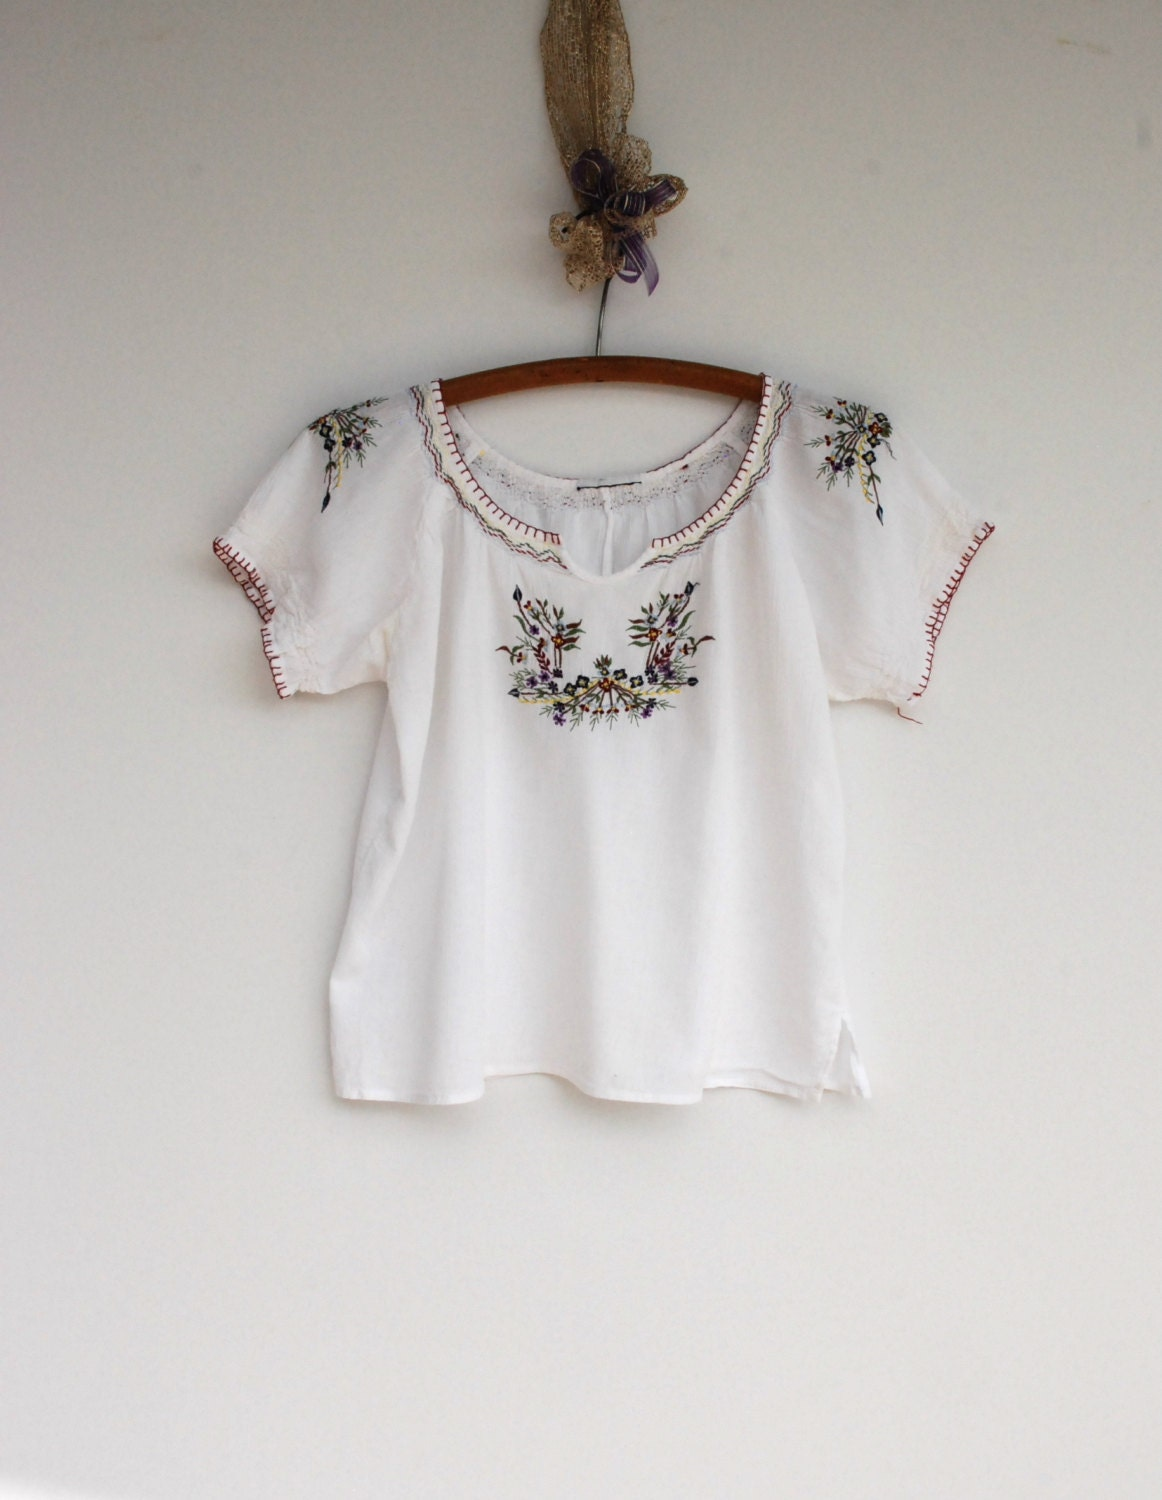 Mexican embroidered gauze top peasant blouse gypsy floral